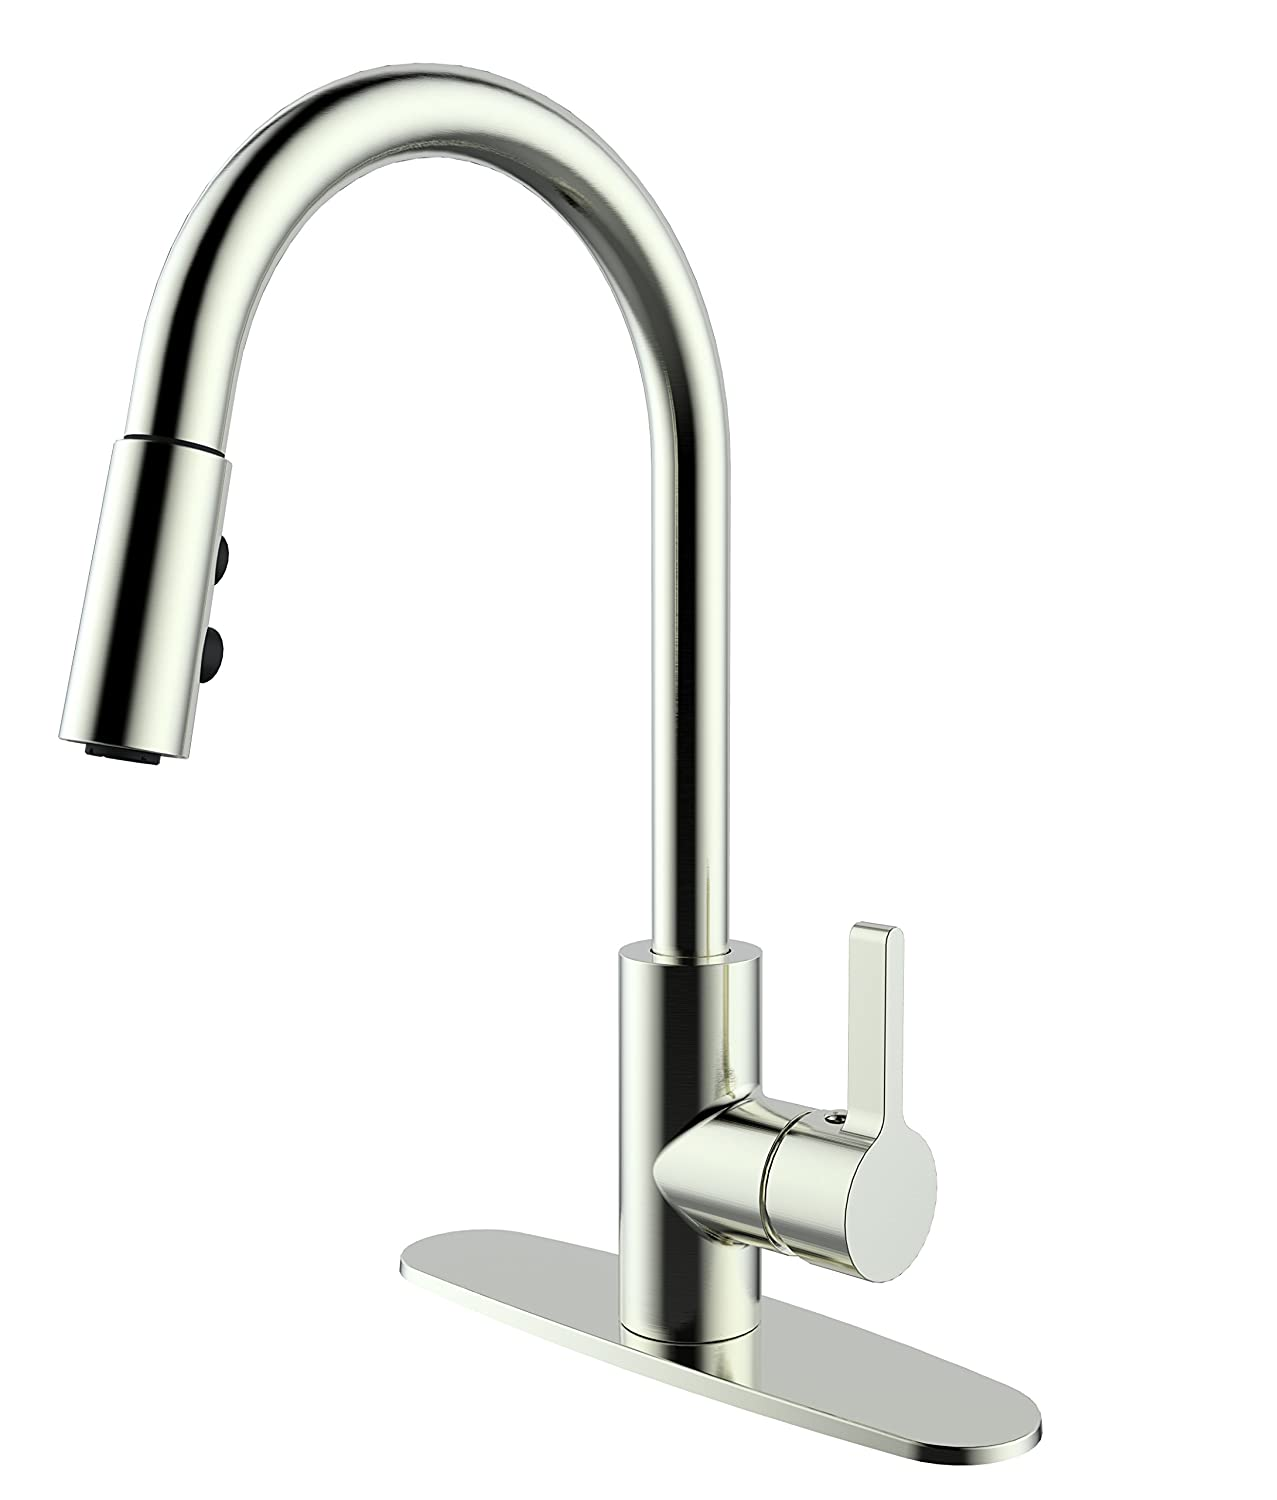 Commercial Kitchen Faucet with Deck Plate - Stainless Steel Kitchen Sink Faucet Single Handle High Arc Brushed Nickel Faucet with Pull out Sprayer